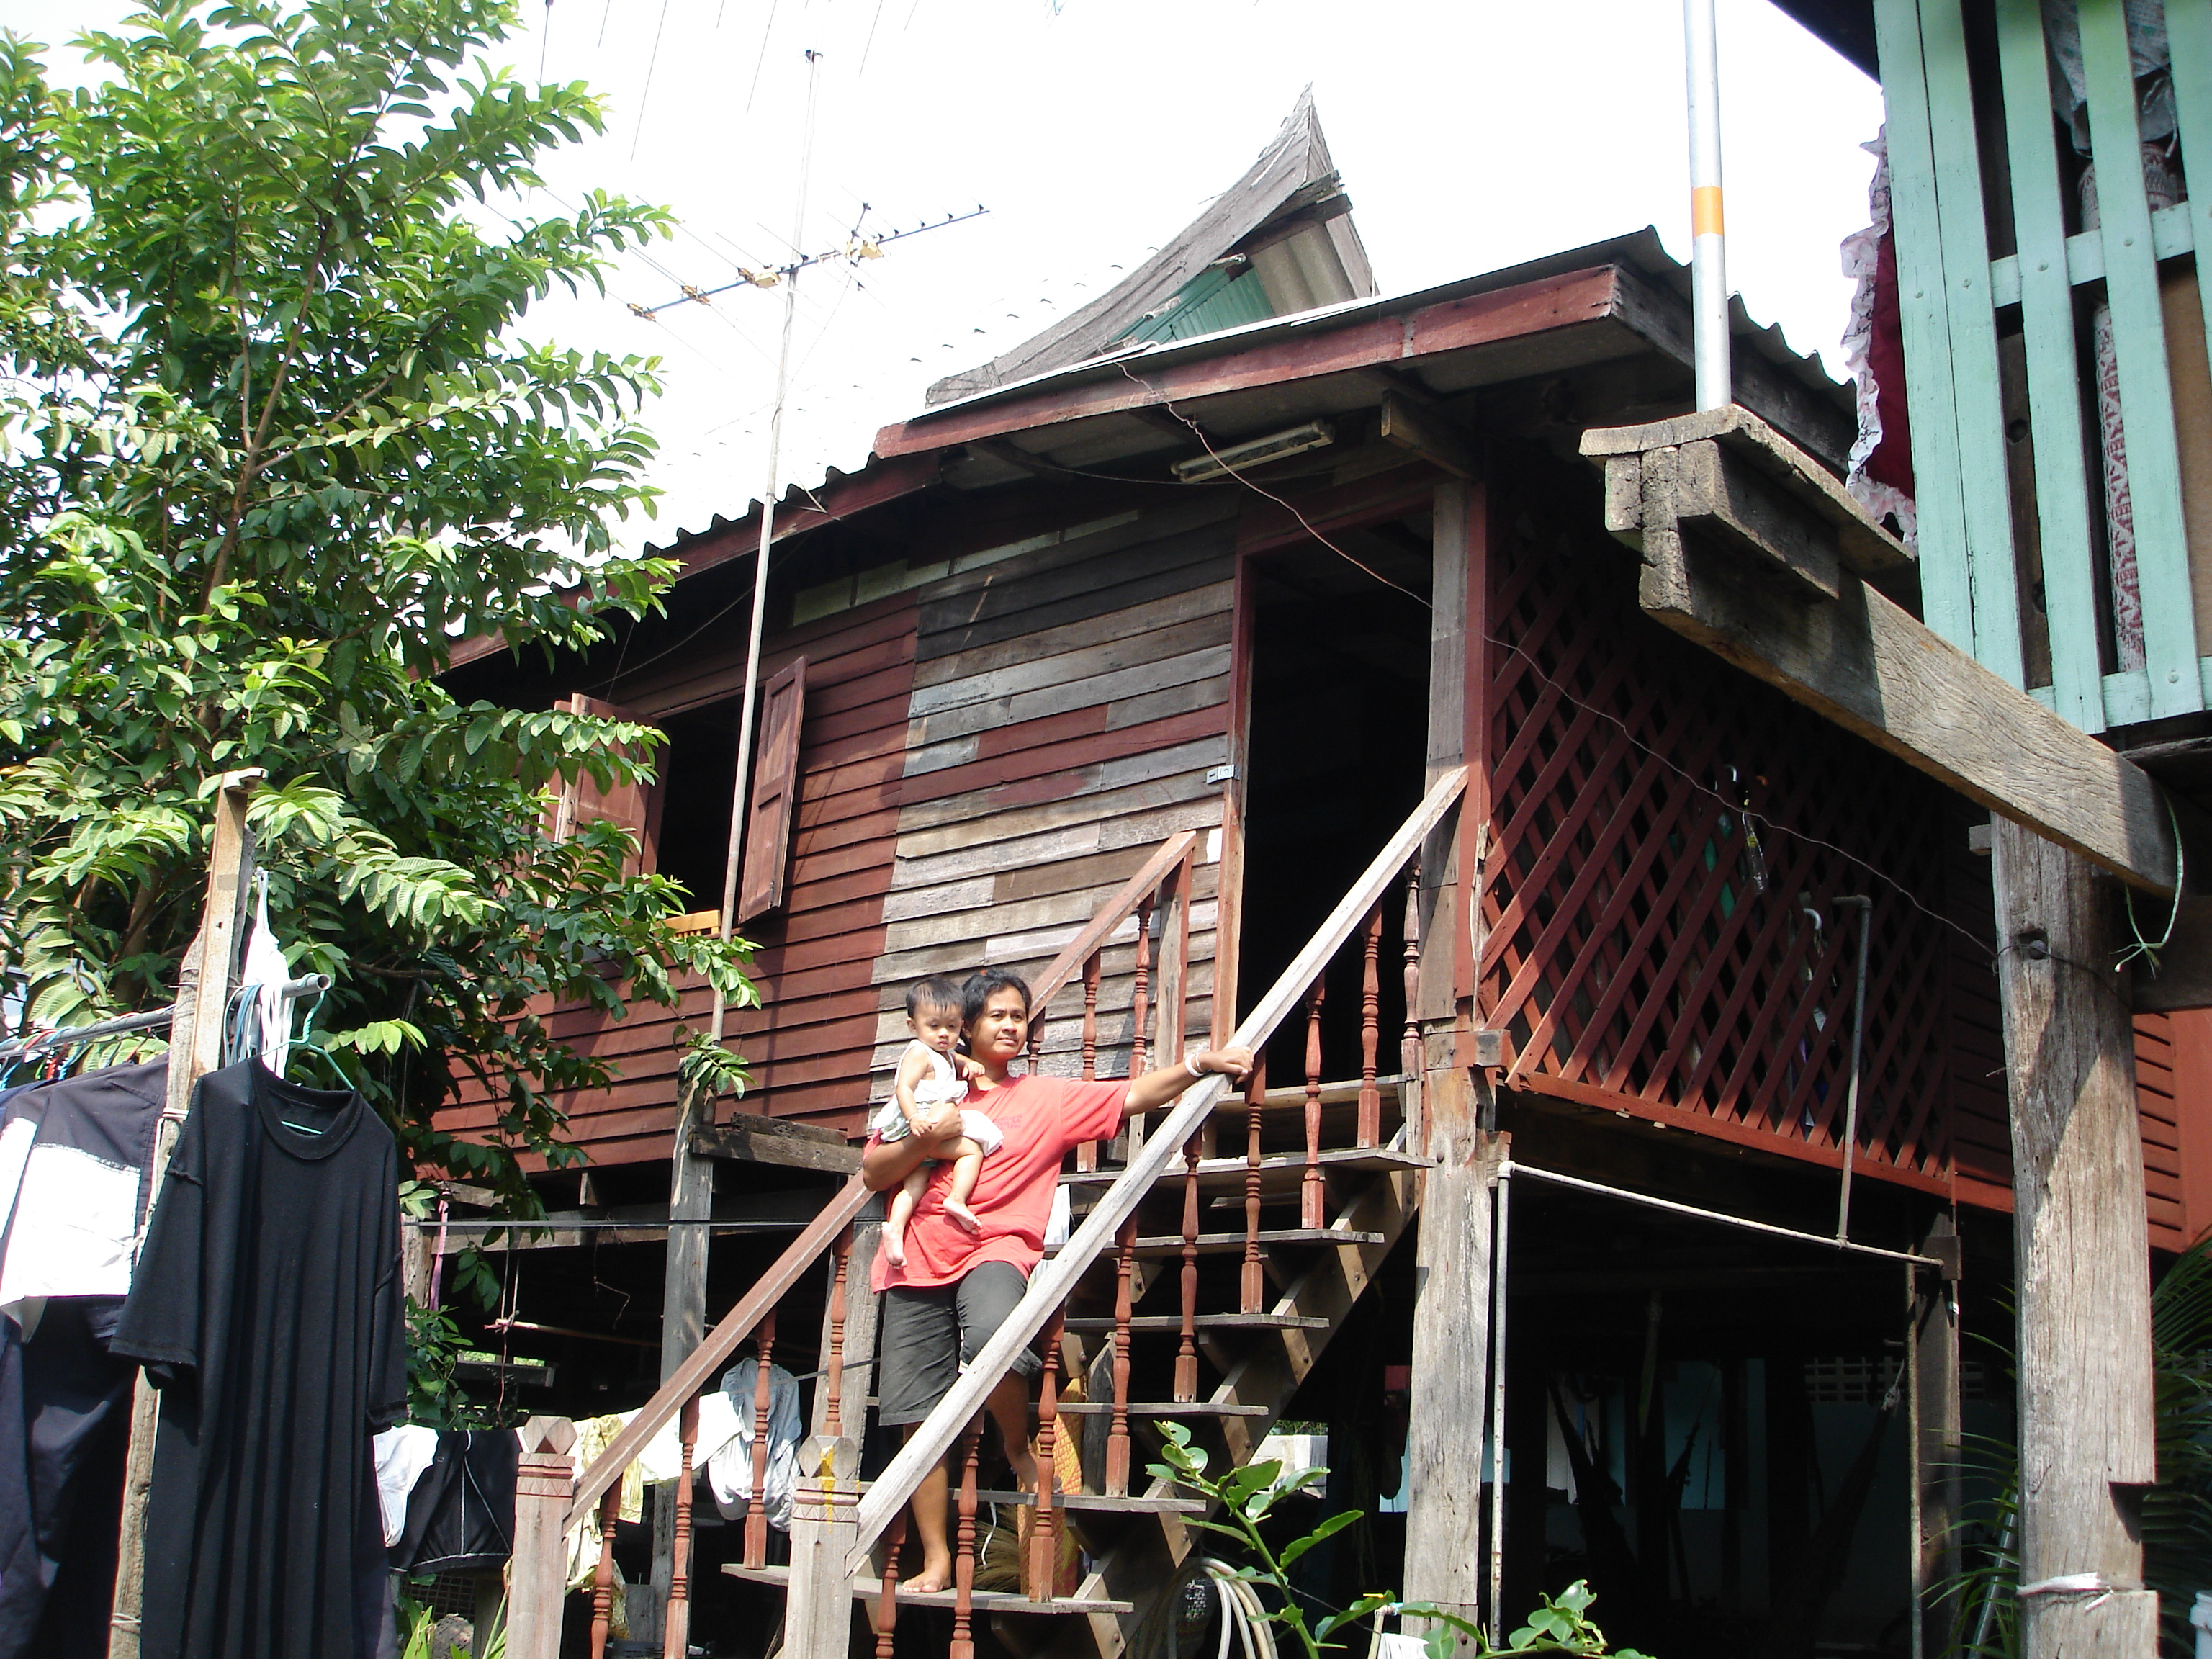 My former son-in-law's family home made a stark contrast to the stately buildings of Bang Pa-In Royal Palace, just two kilometers further down the road. Photo taken by Mark Jochim on May 16, 2006.